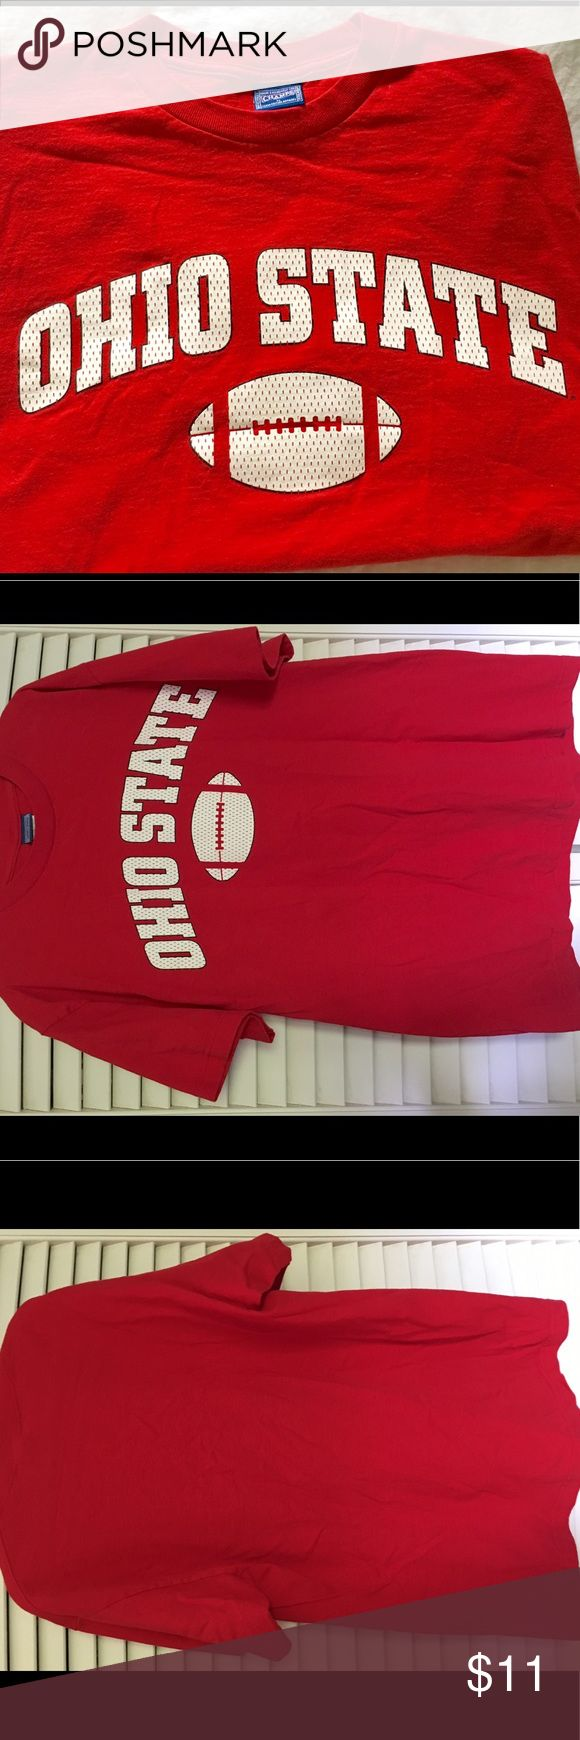 Men's Ohio State football T-shirt like new, size M A must for the Buckeye fan!  This bright red cotton T-shirt has been worn once. Has the Ohio State logo in white, which is meant to look like football jersey material. Smoke-free, no stains, no rips, still nice and crisp and ready for your closet. Gildan Shirts Tees - Short Sleeve